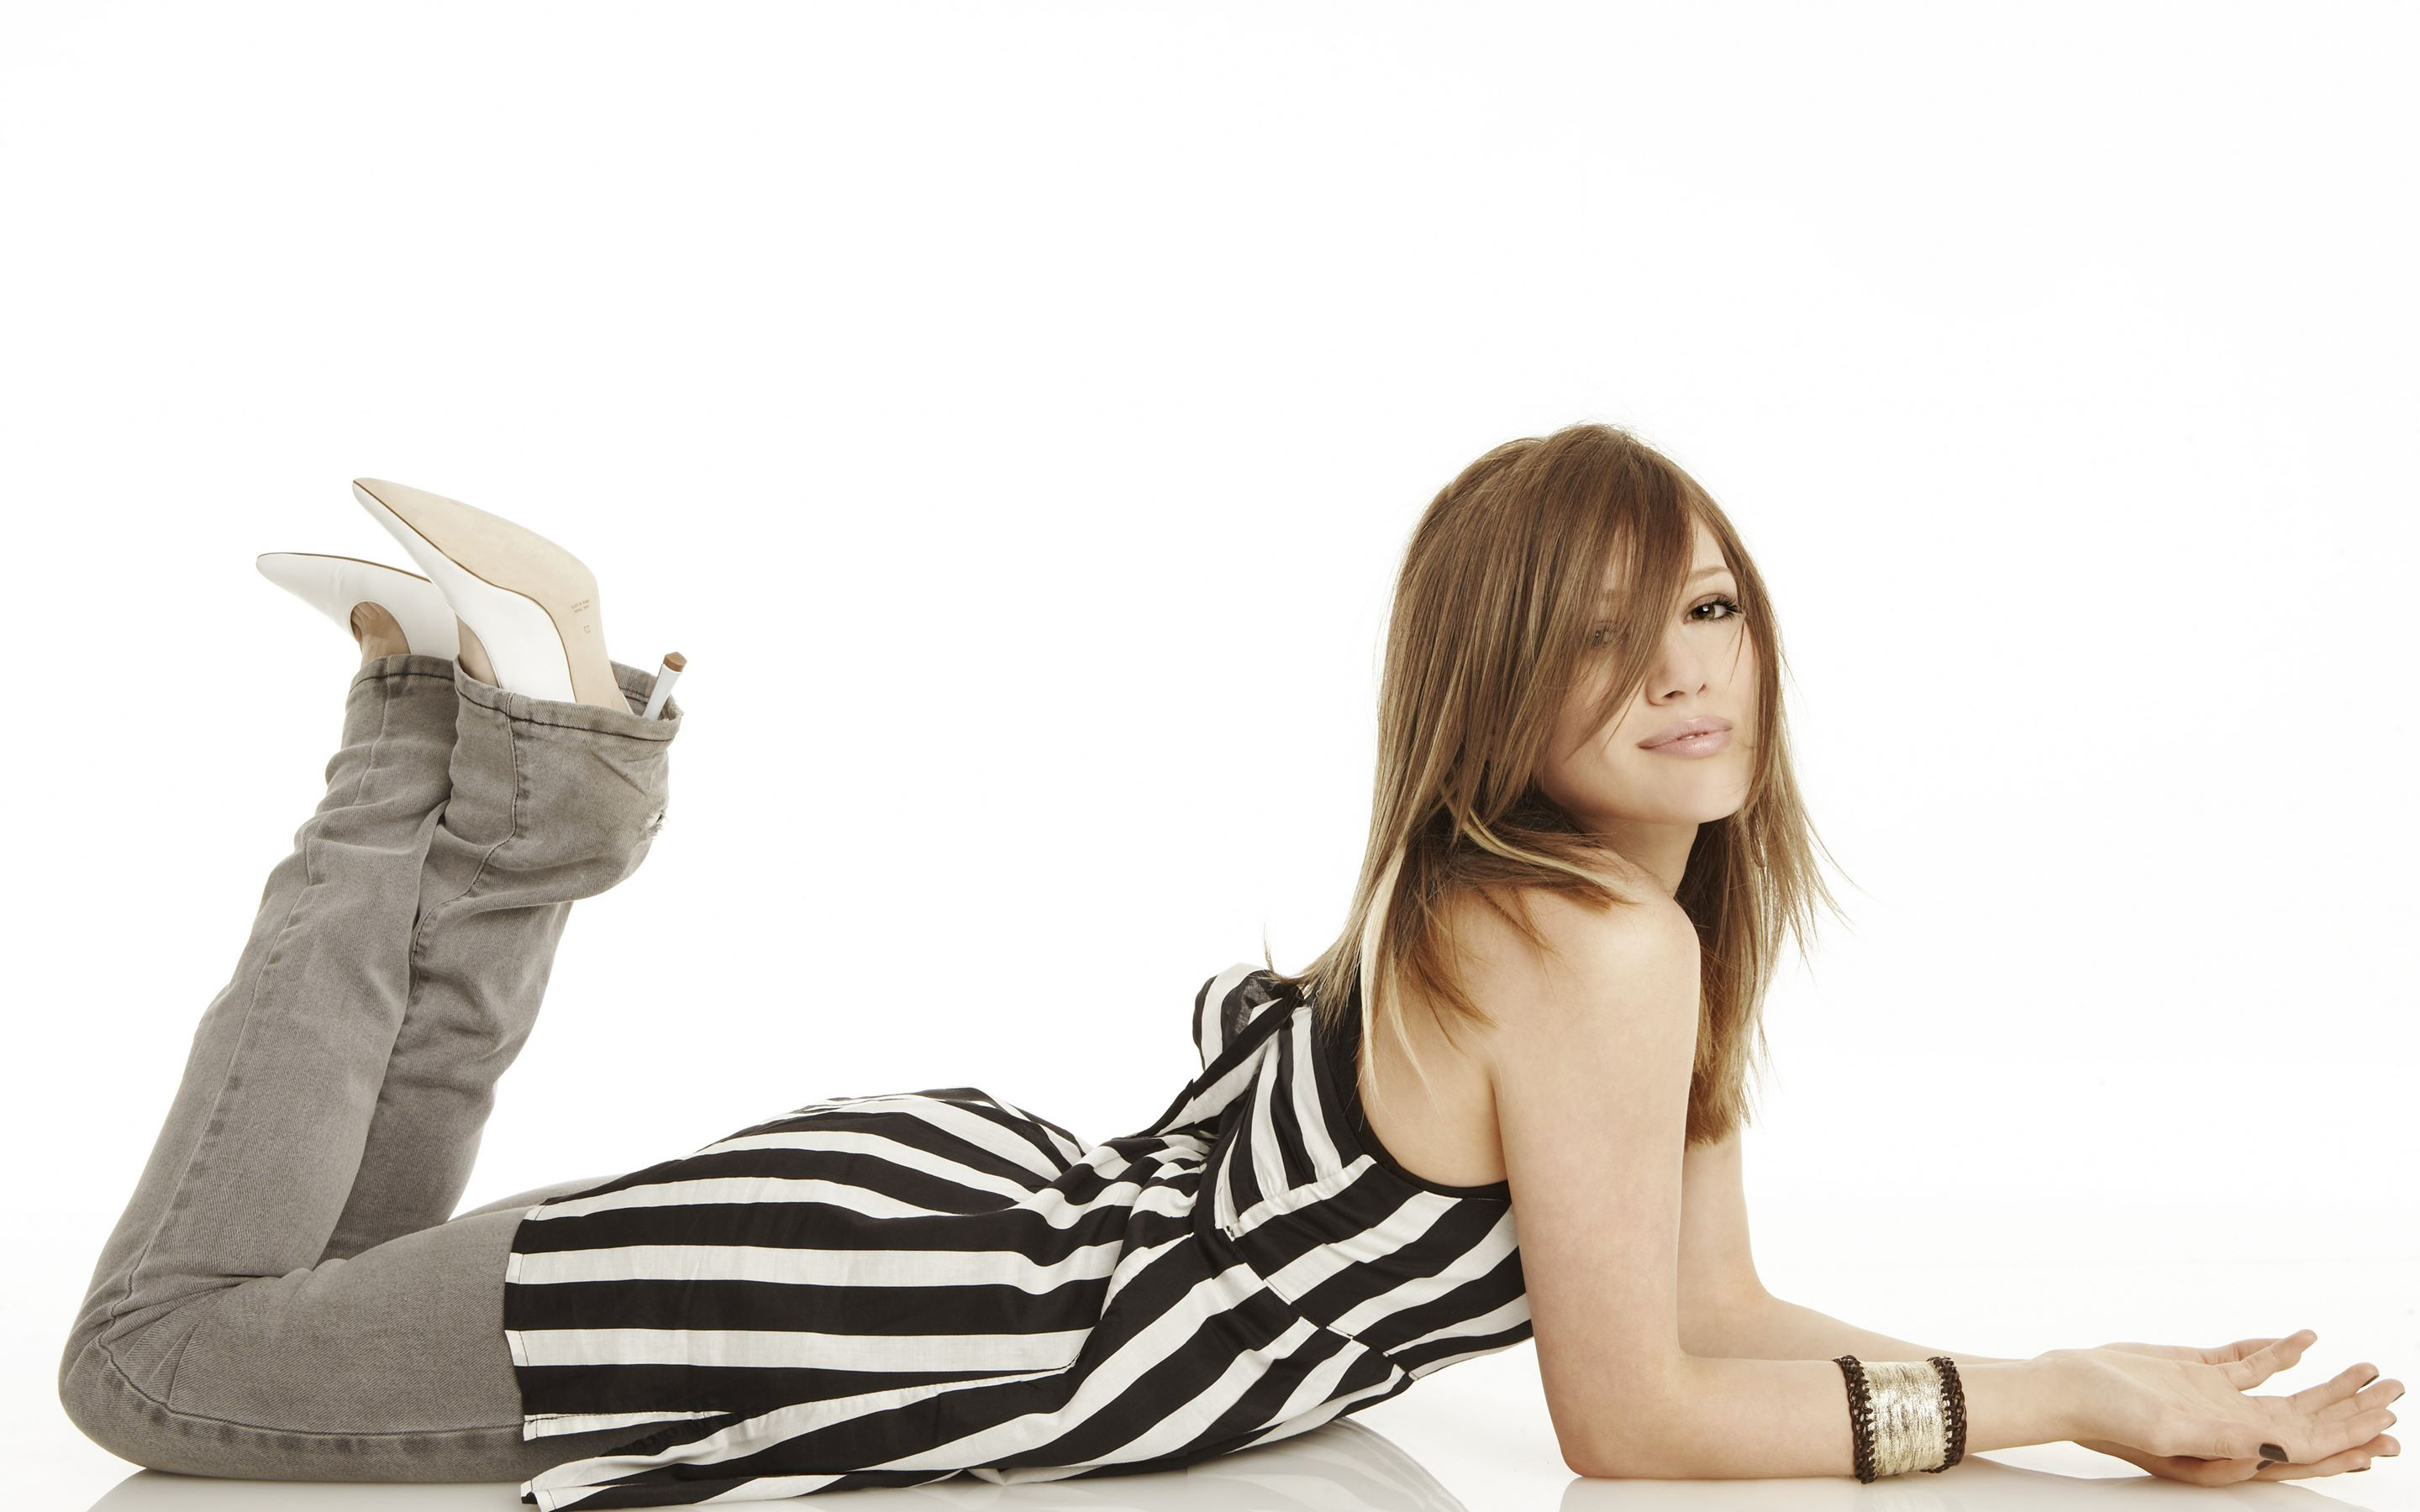 Desktop Hilary Duff Cute Sleepping Style Pose Free Background Computer Photo Hd